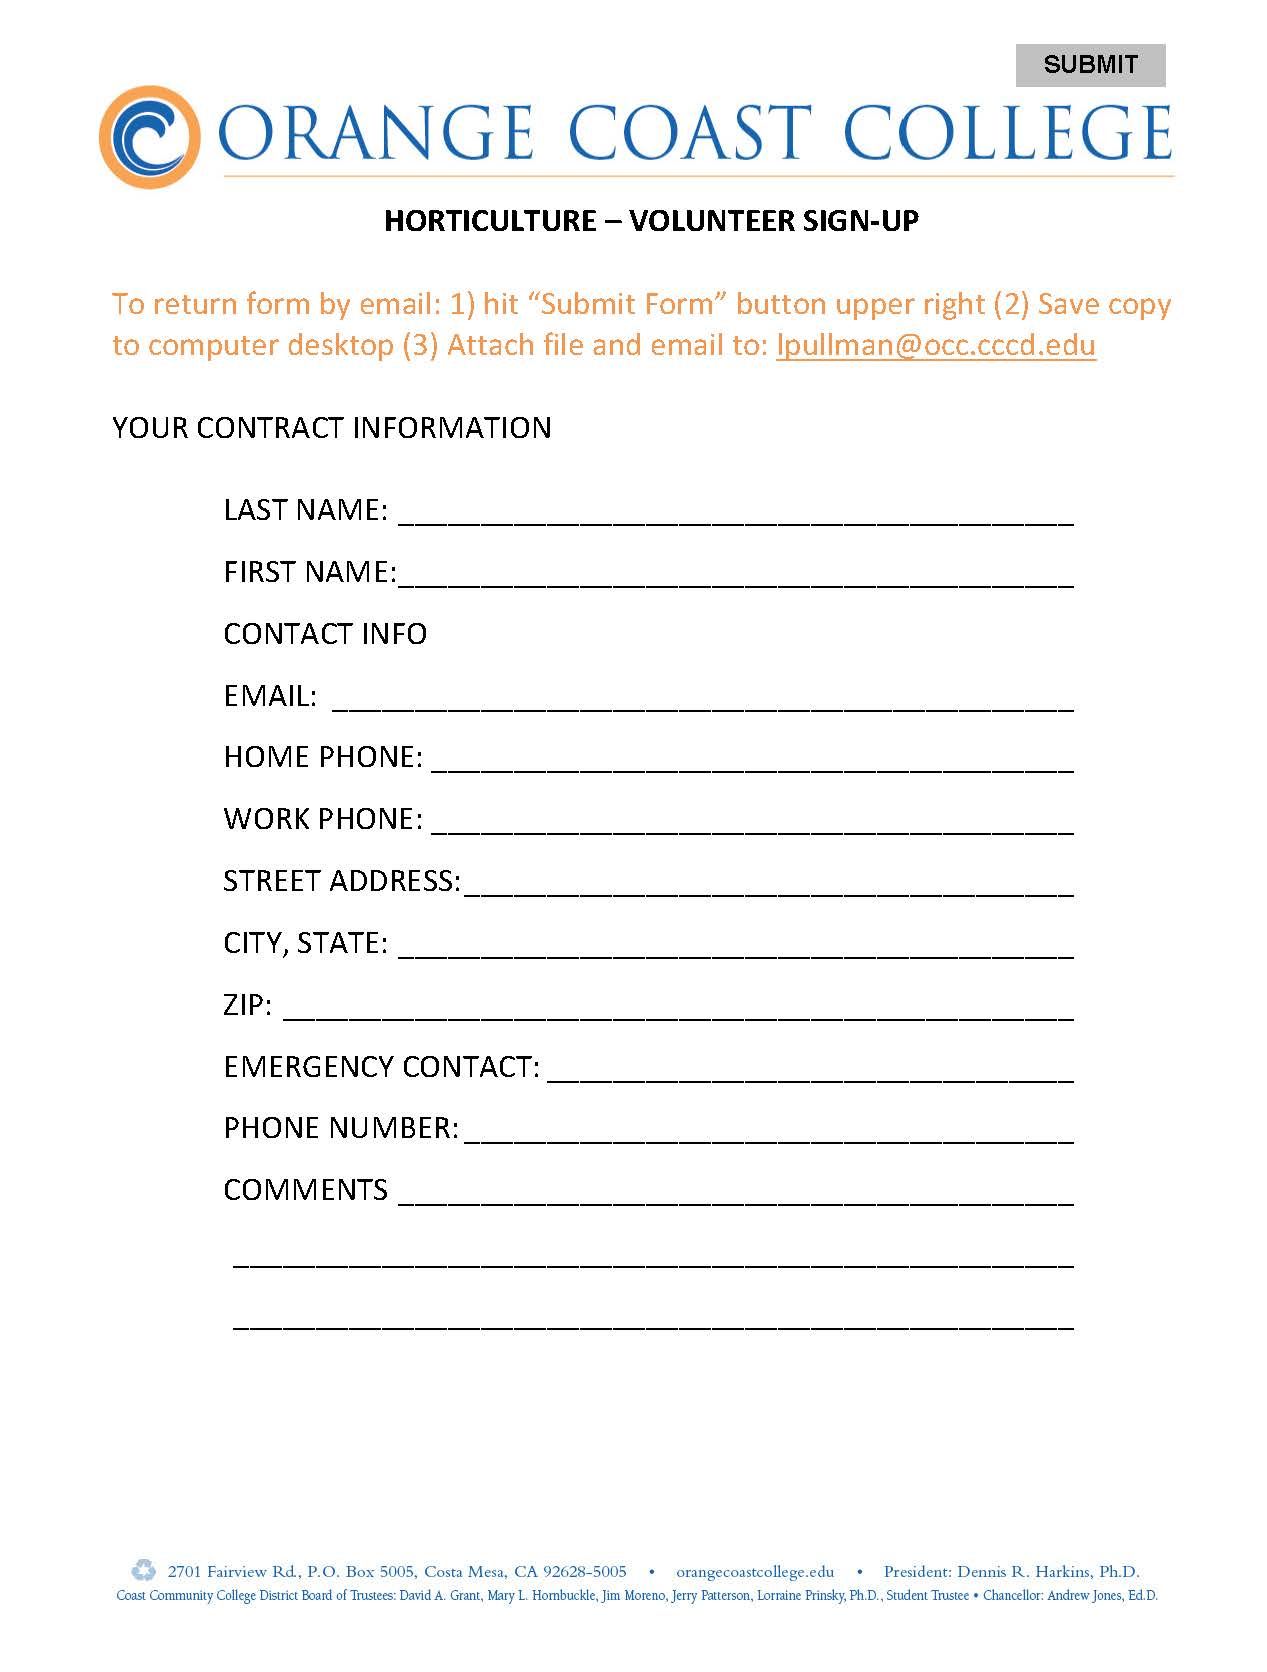 OCC_HORT_VOLUNTEER_FORM.jpg